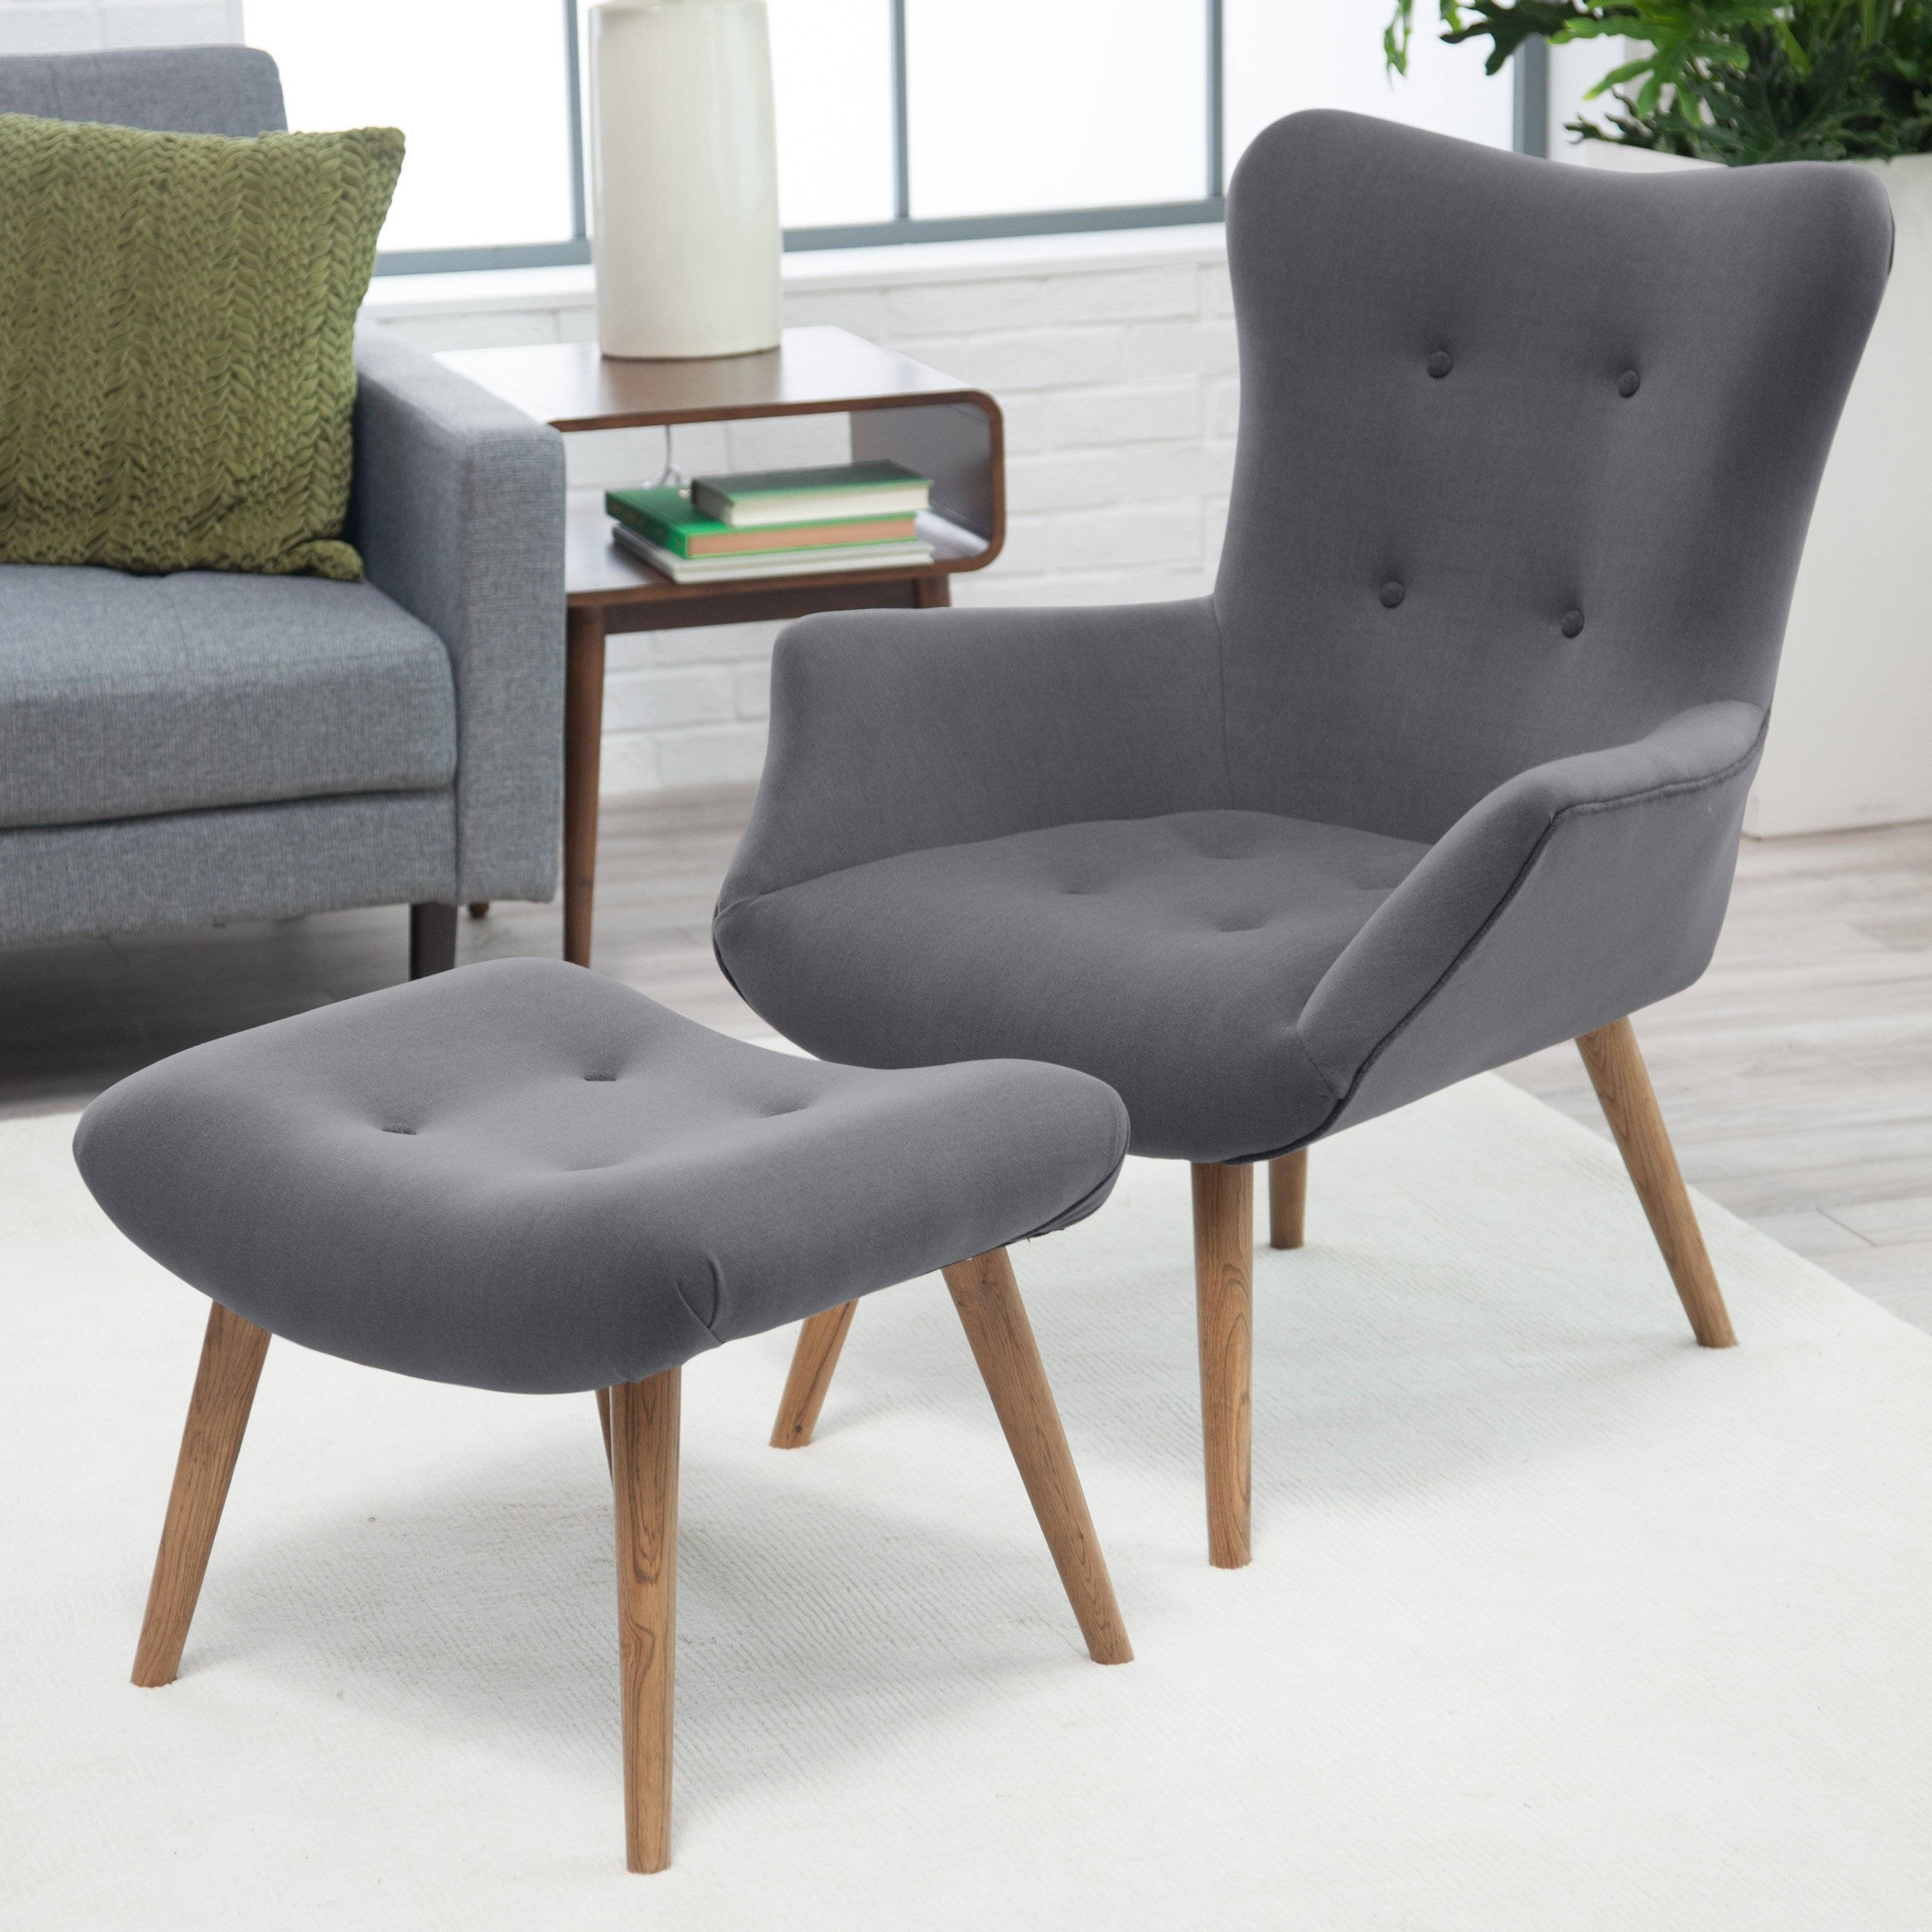 Bedroom: Fascinating Mid Century Modern Chairs Make Your Elegant in Grey Sofa Chairs (Image 1 of 30)